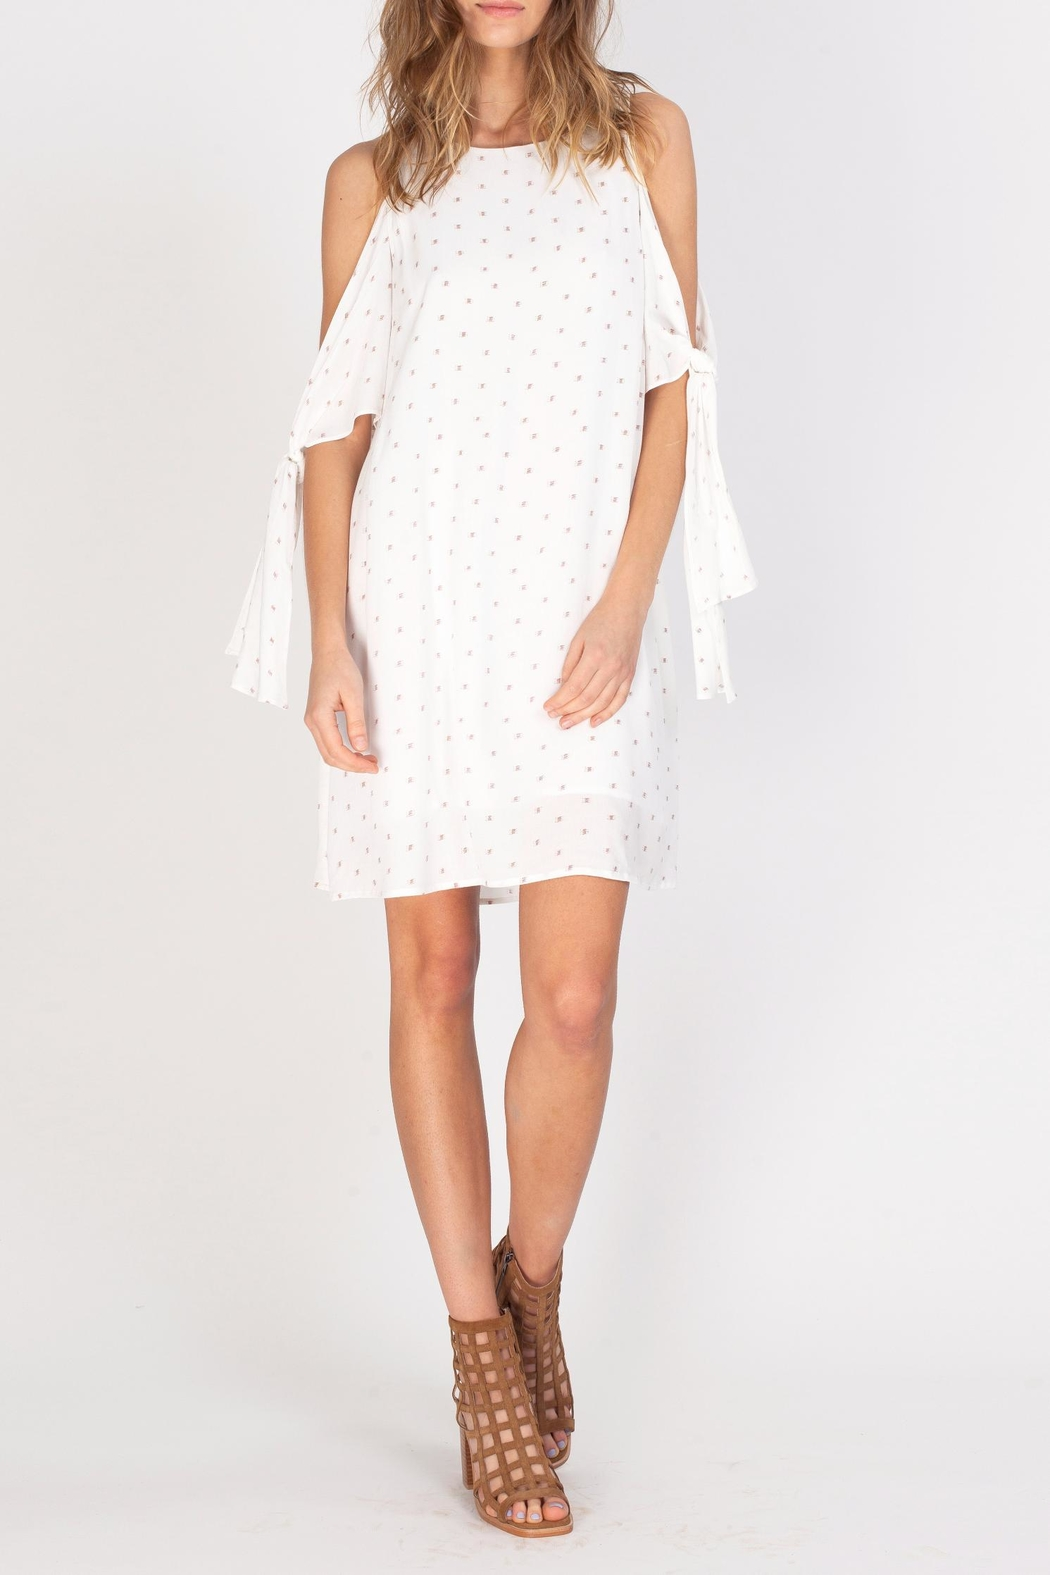 Gentle Fawn Coretta Dress - Main Image